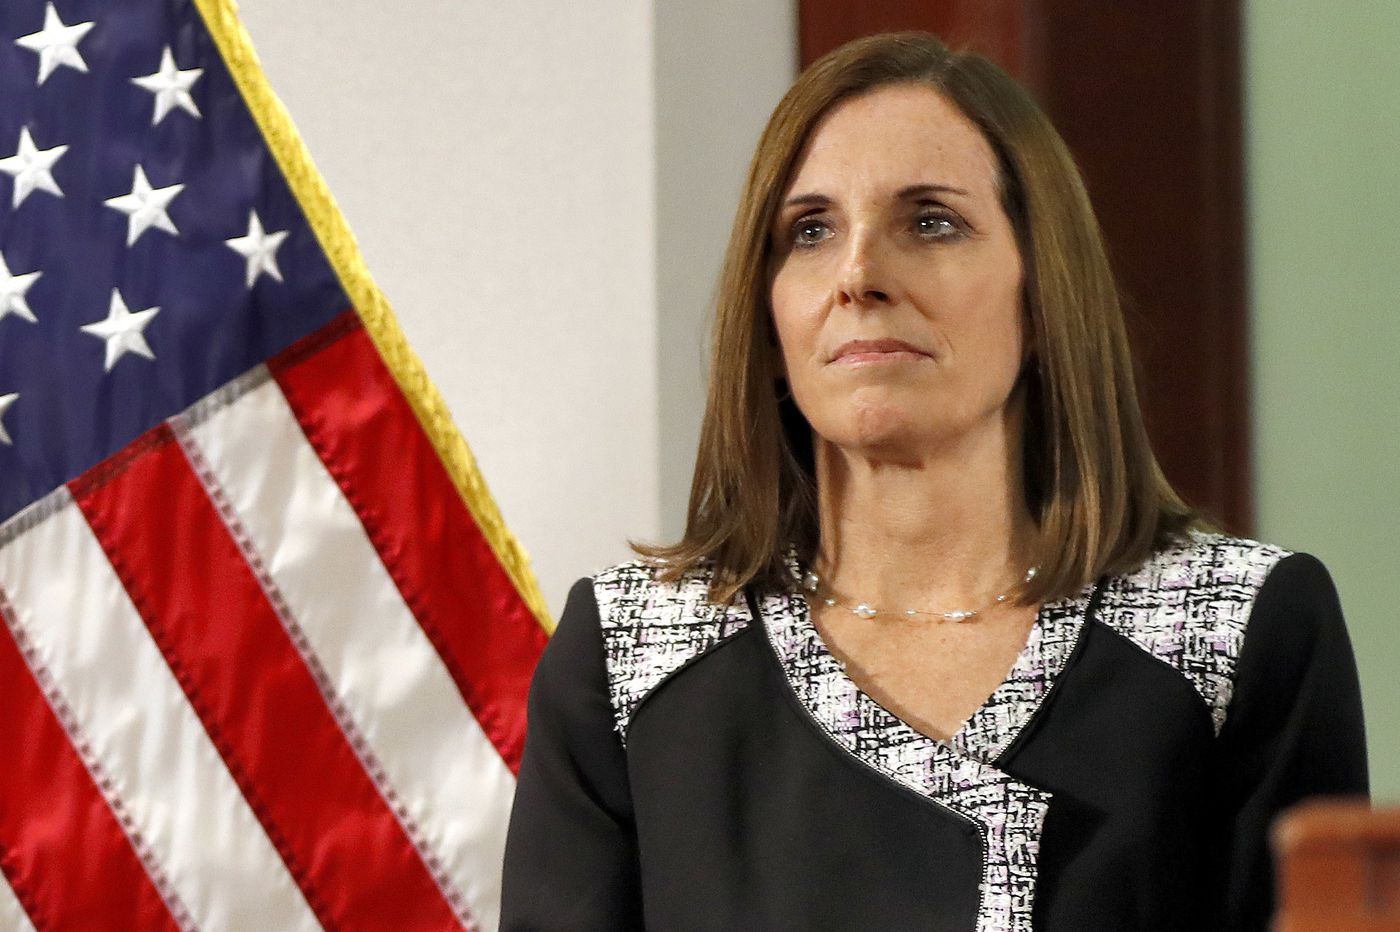 McSally: 'I felt the system was raping me all over again'